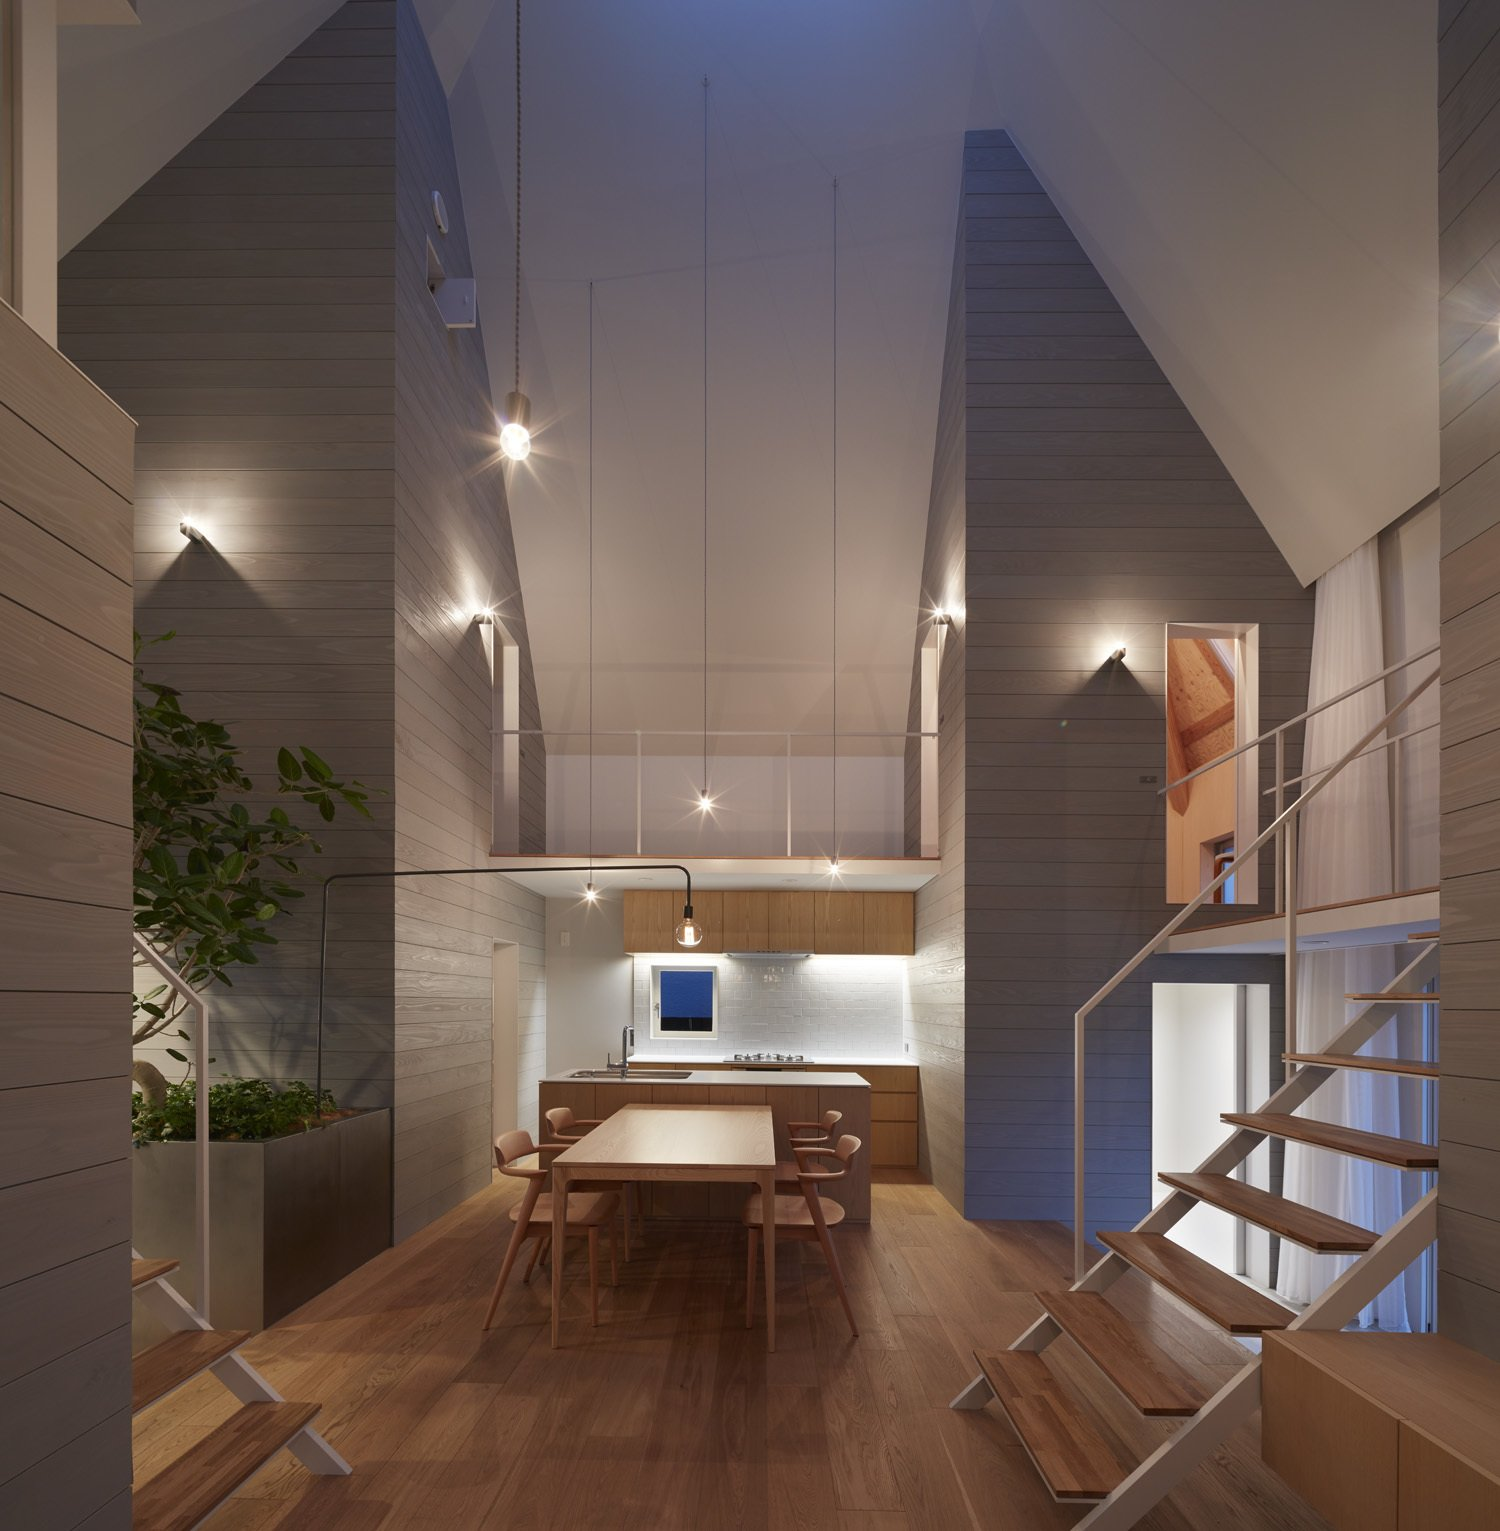 Photo 8 of 8 in House in Iwakura by Airhouse